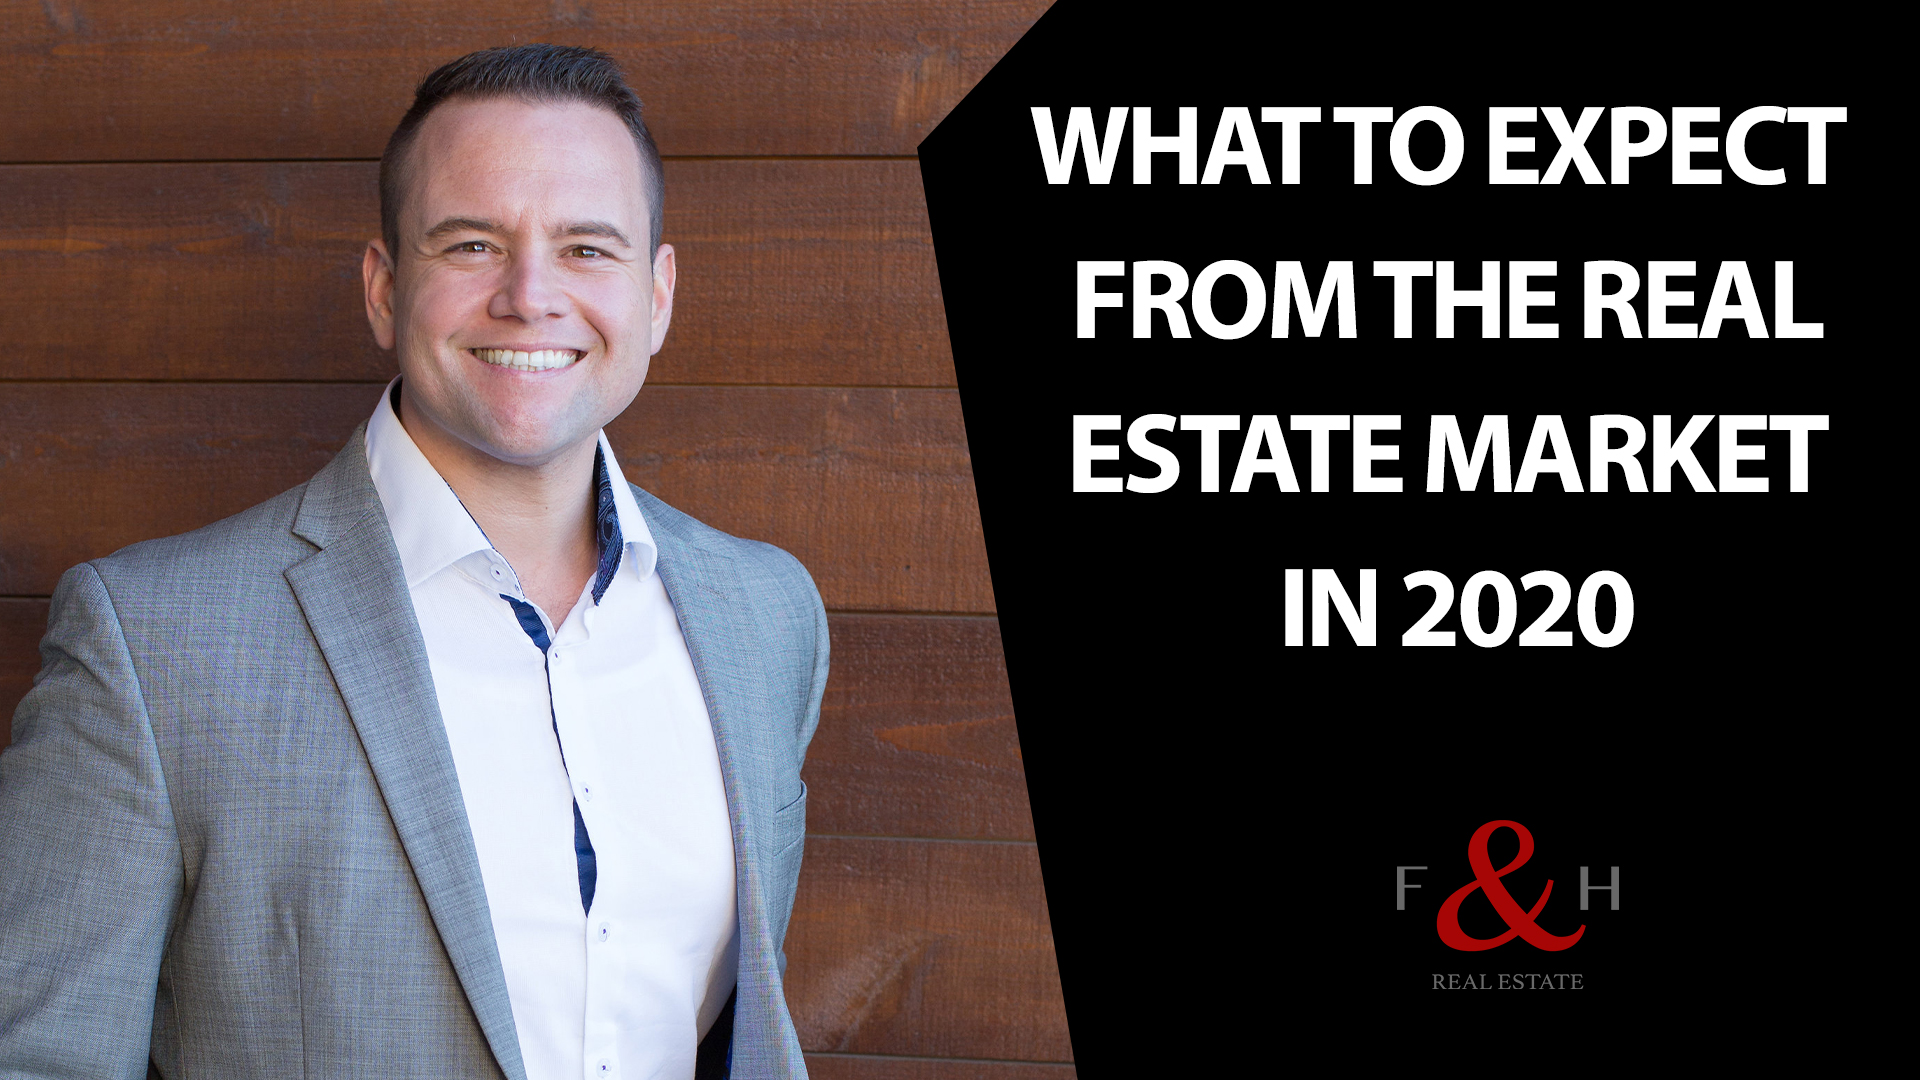 What Does the Future Hold for Homebuyers and Sellers in 2020?